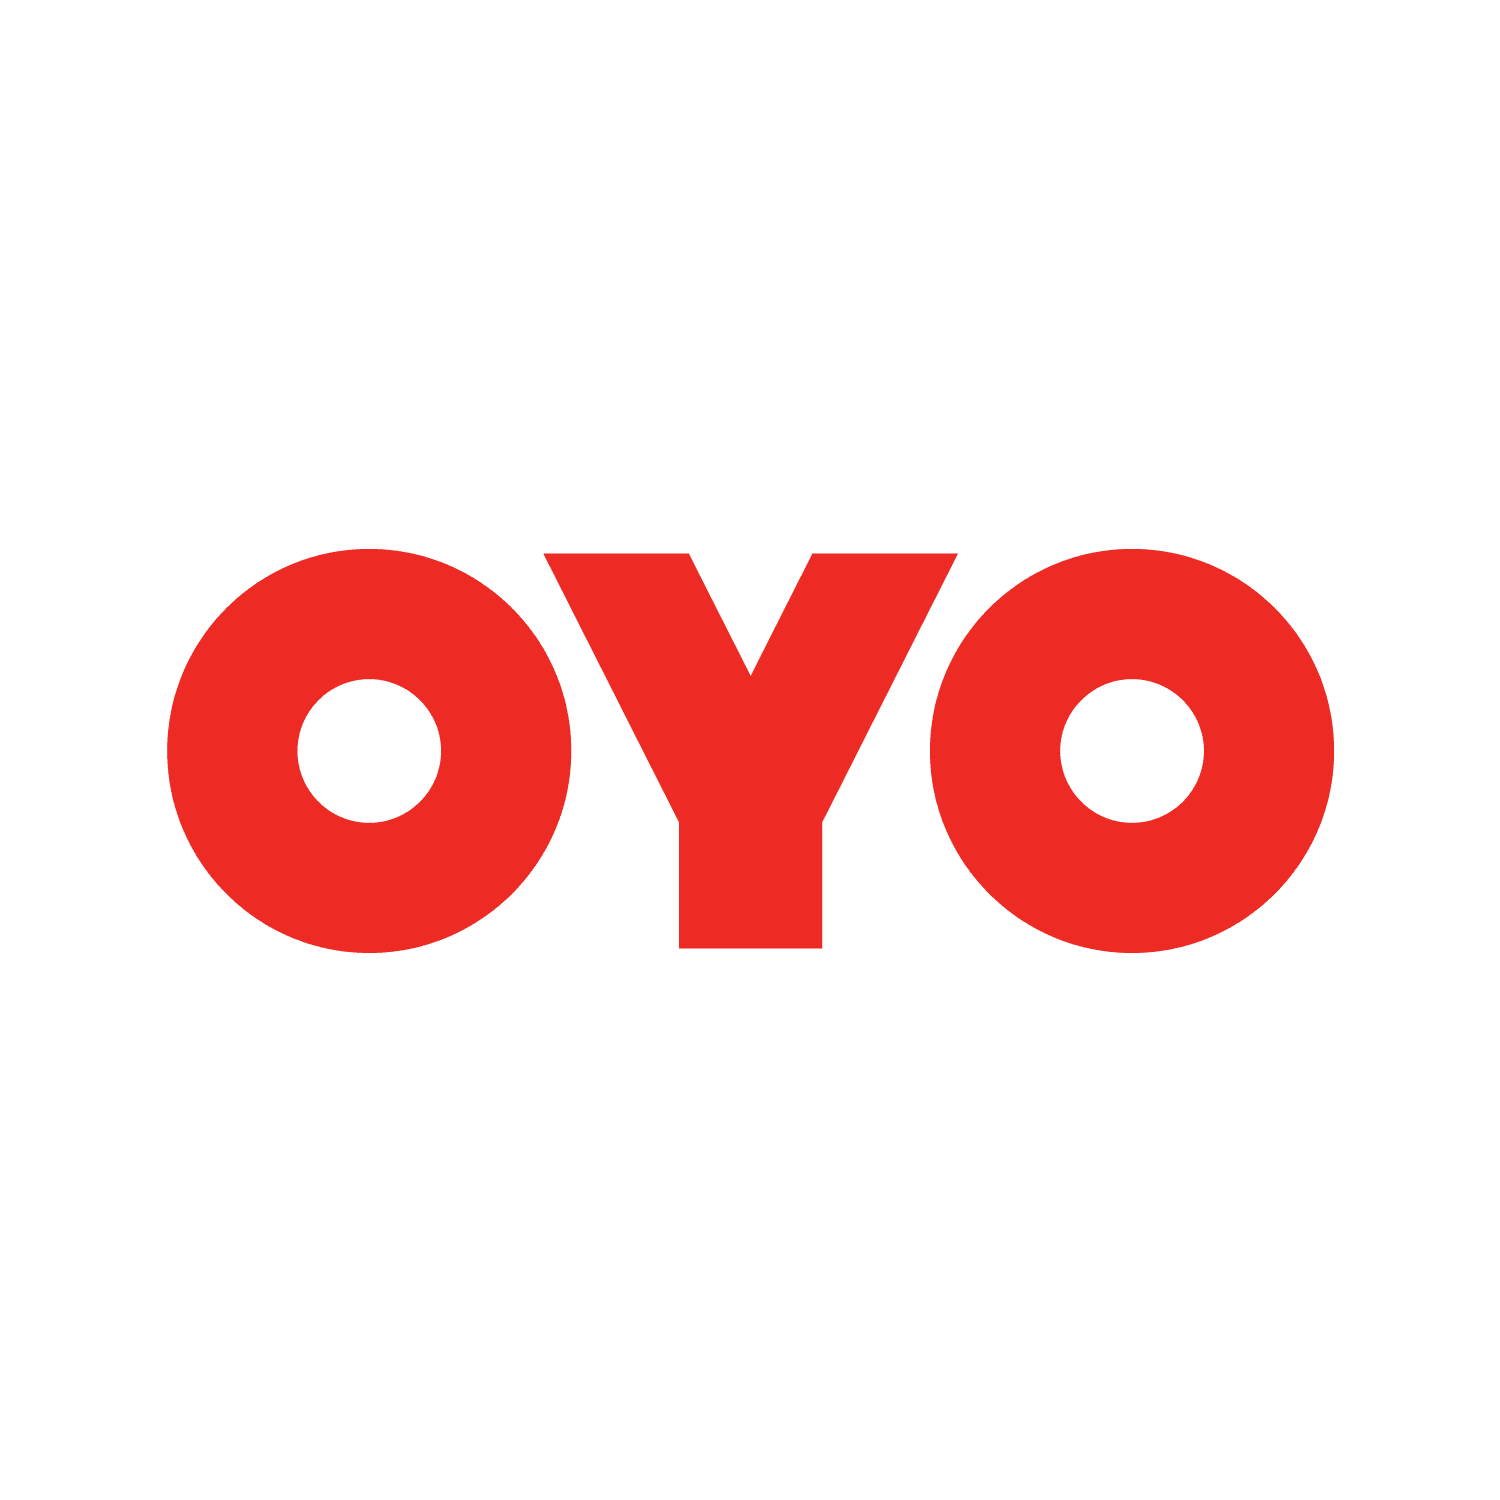 Book an OYO at FLAT ₹799 (Valid for 10000 rooms only)